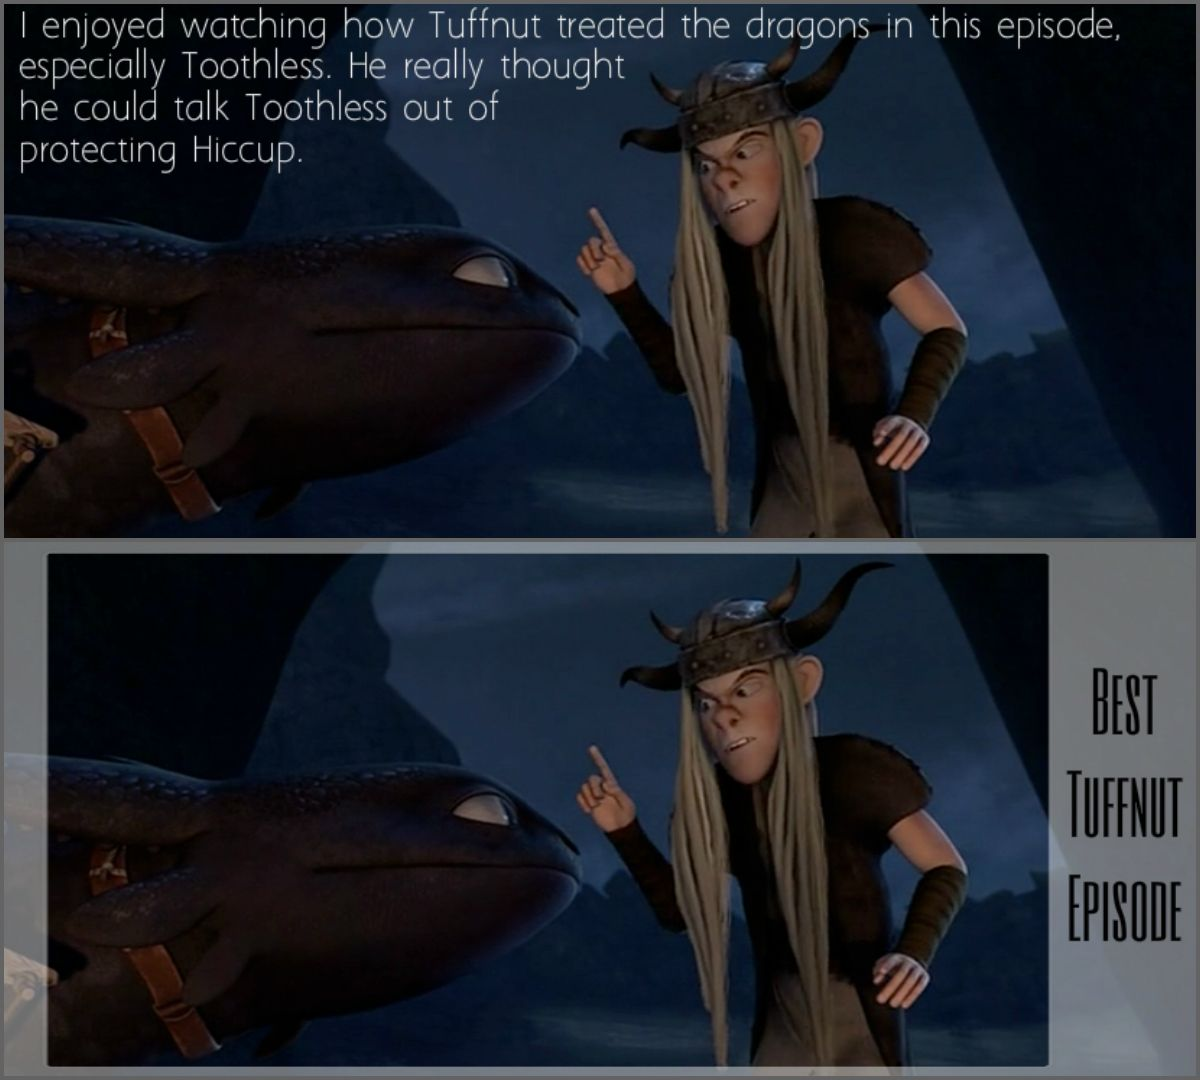 """This episode held so many treasures. The """"awkwardness"""" between Dagur and Hiccup (including the amazing battle scene), Snotlout's composure, Astrid's ferocity, but what I found the most interesting, as to my opinion of the best plot filler we have seen in this series, was Tuffnut's moments of dragon responsibility. He surprises me with his knowledge sometimes. I'm beginning to think he's marginally smarter than his sister."""